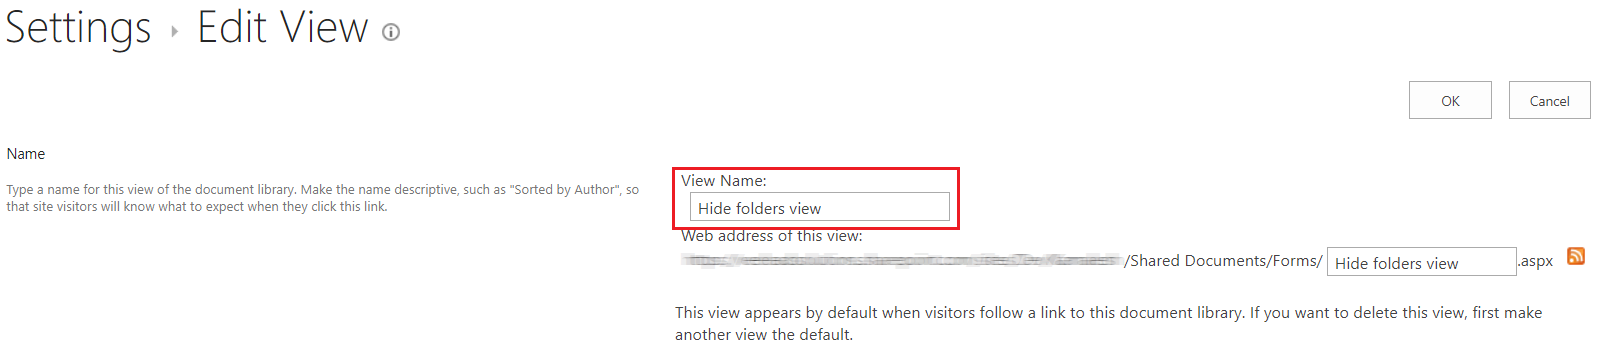 SharePoint Edit Settings